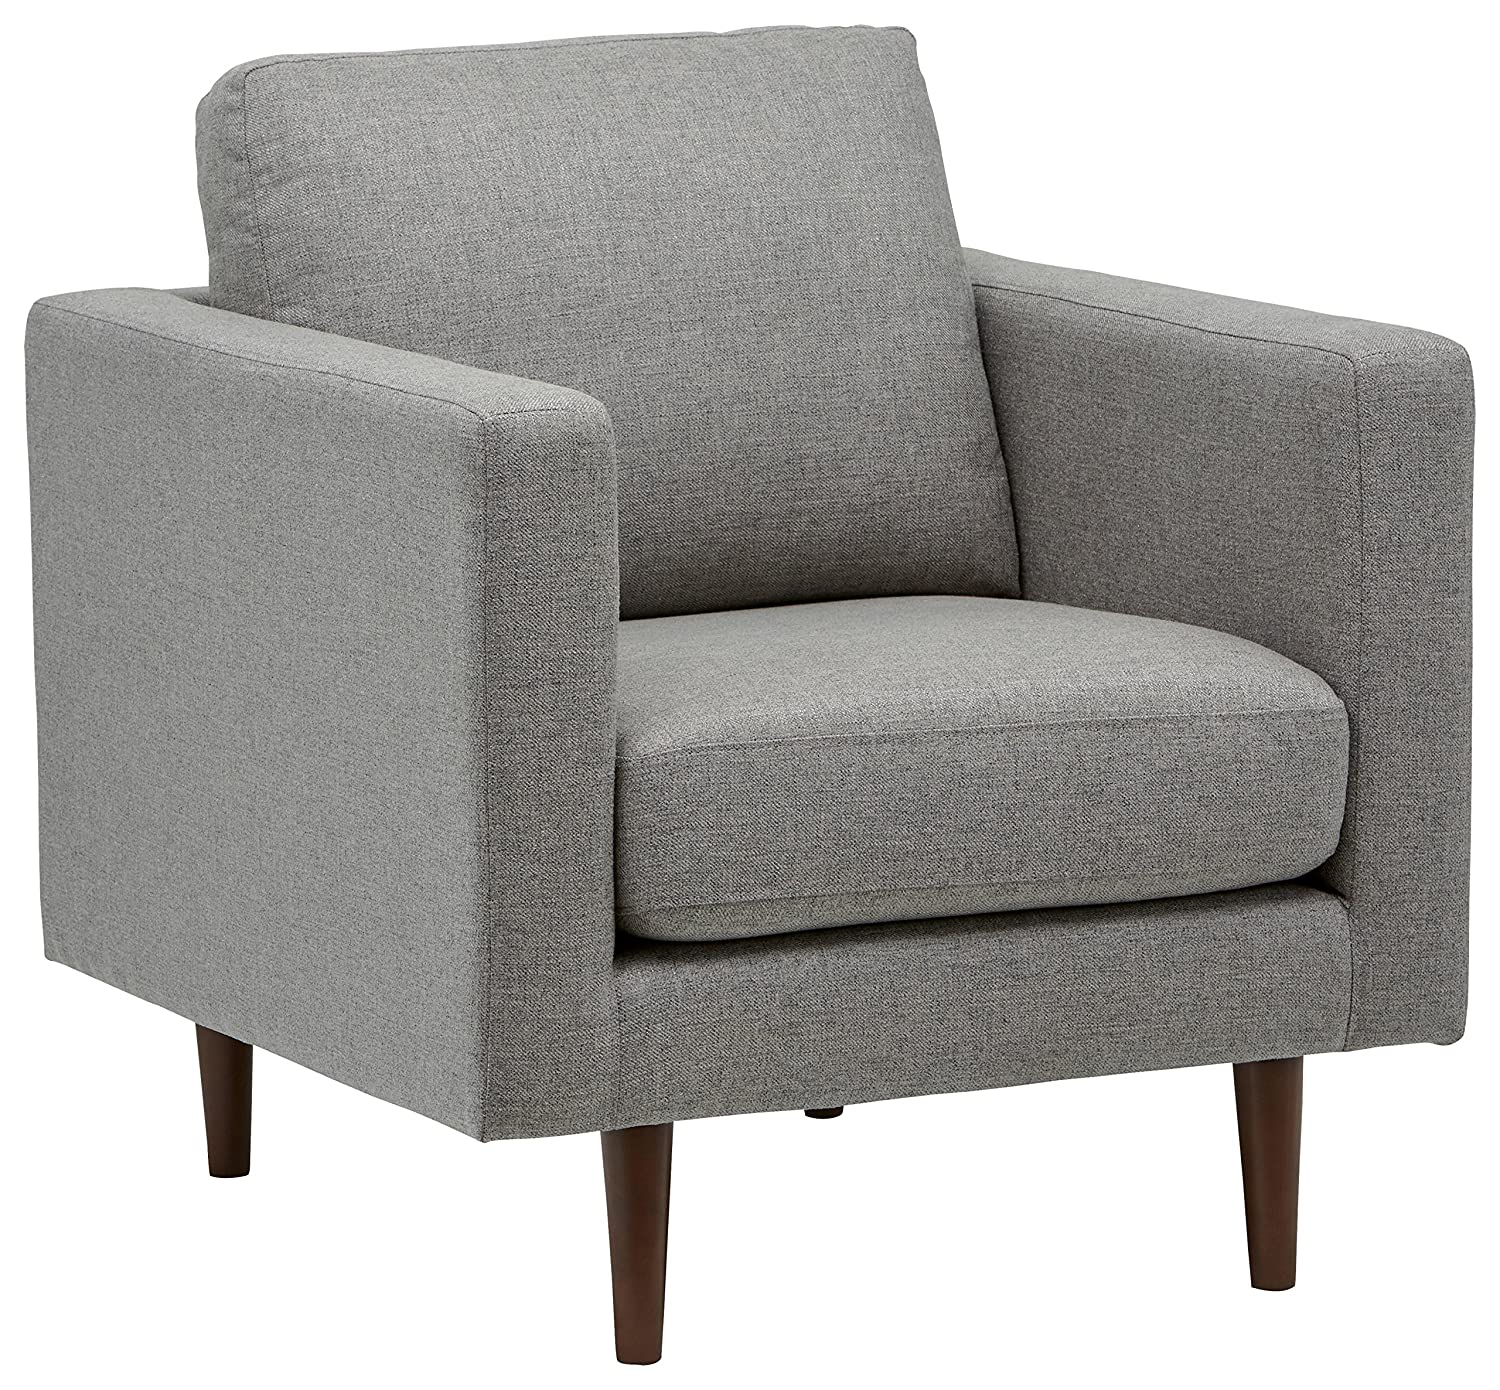 The 5 Best Accent Chairs In 2018: Reviews & Buying Guide 16